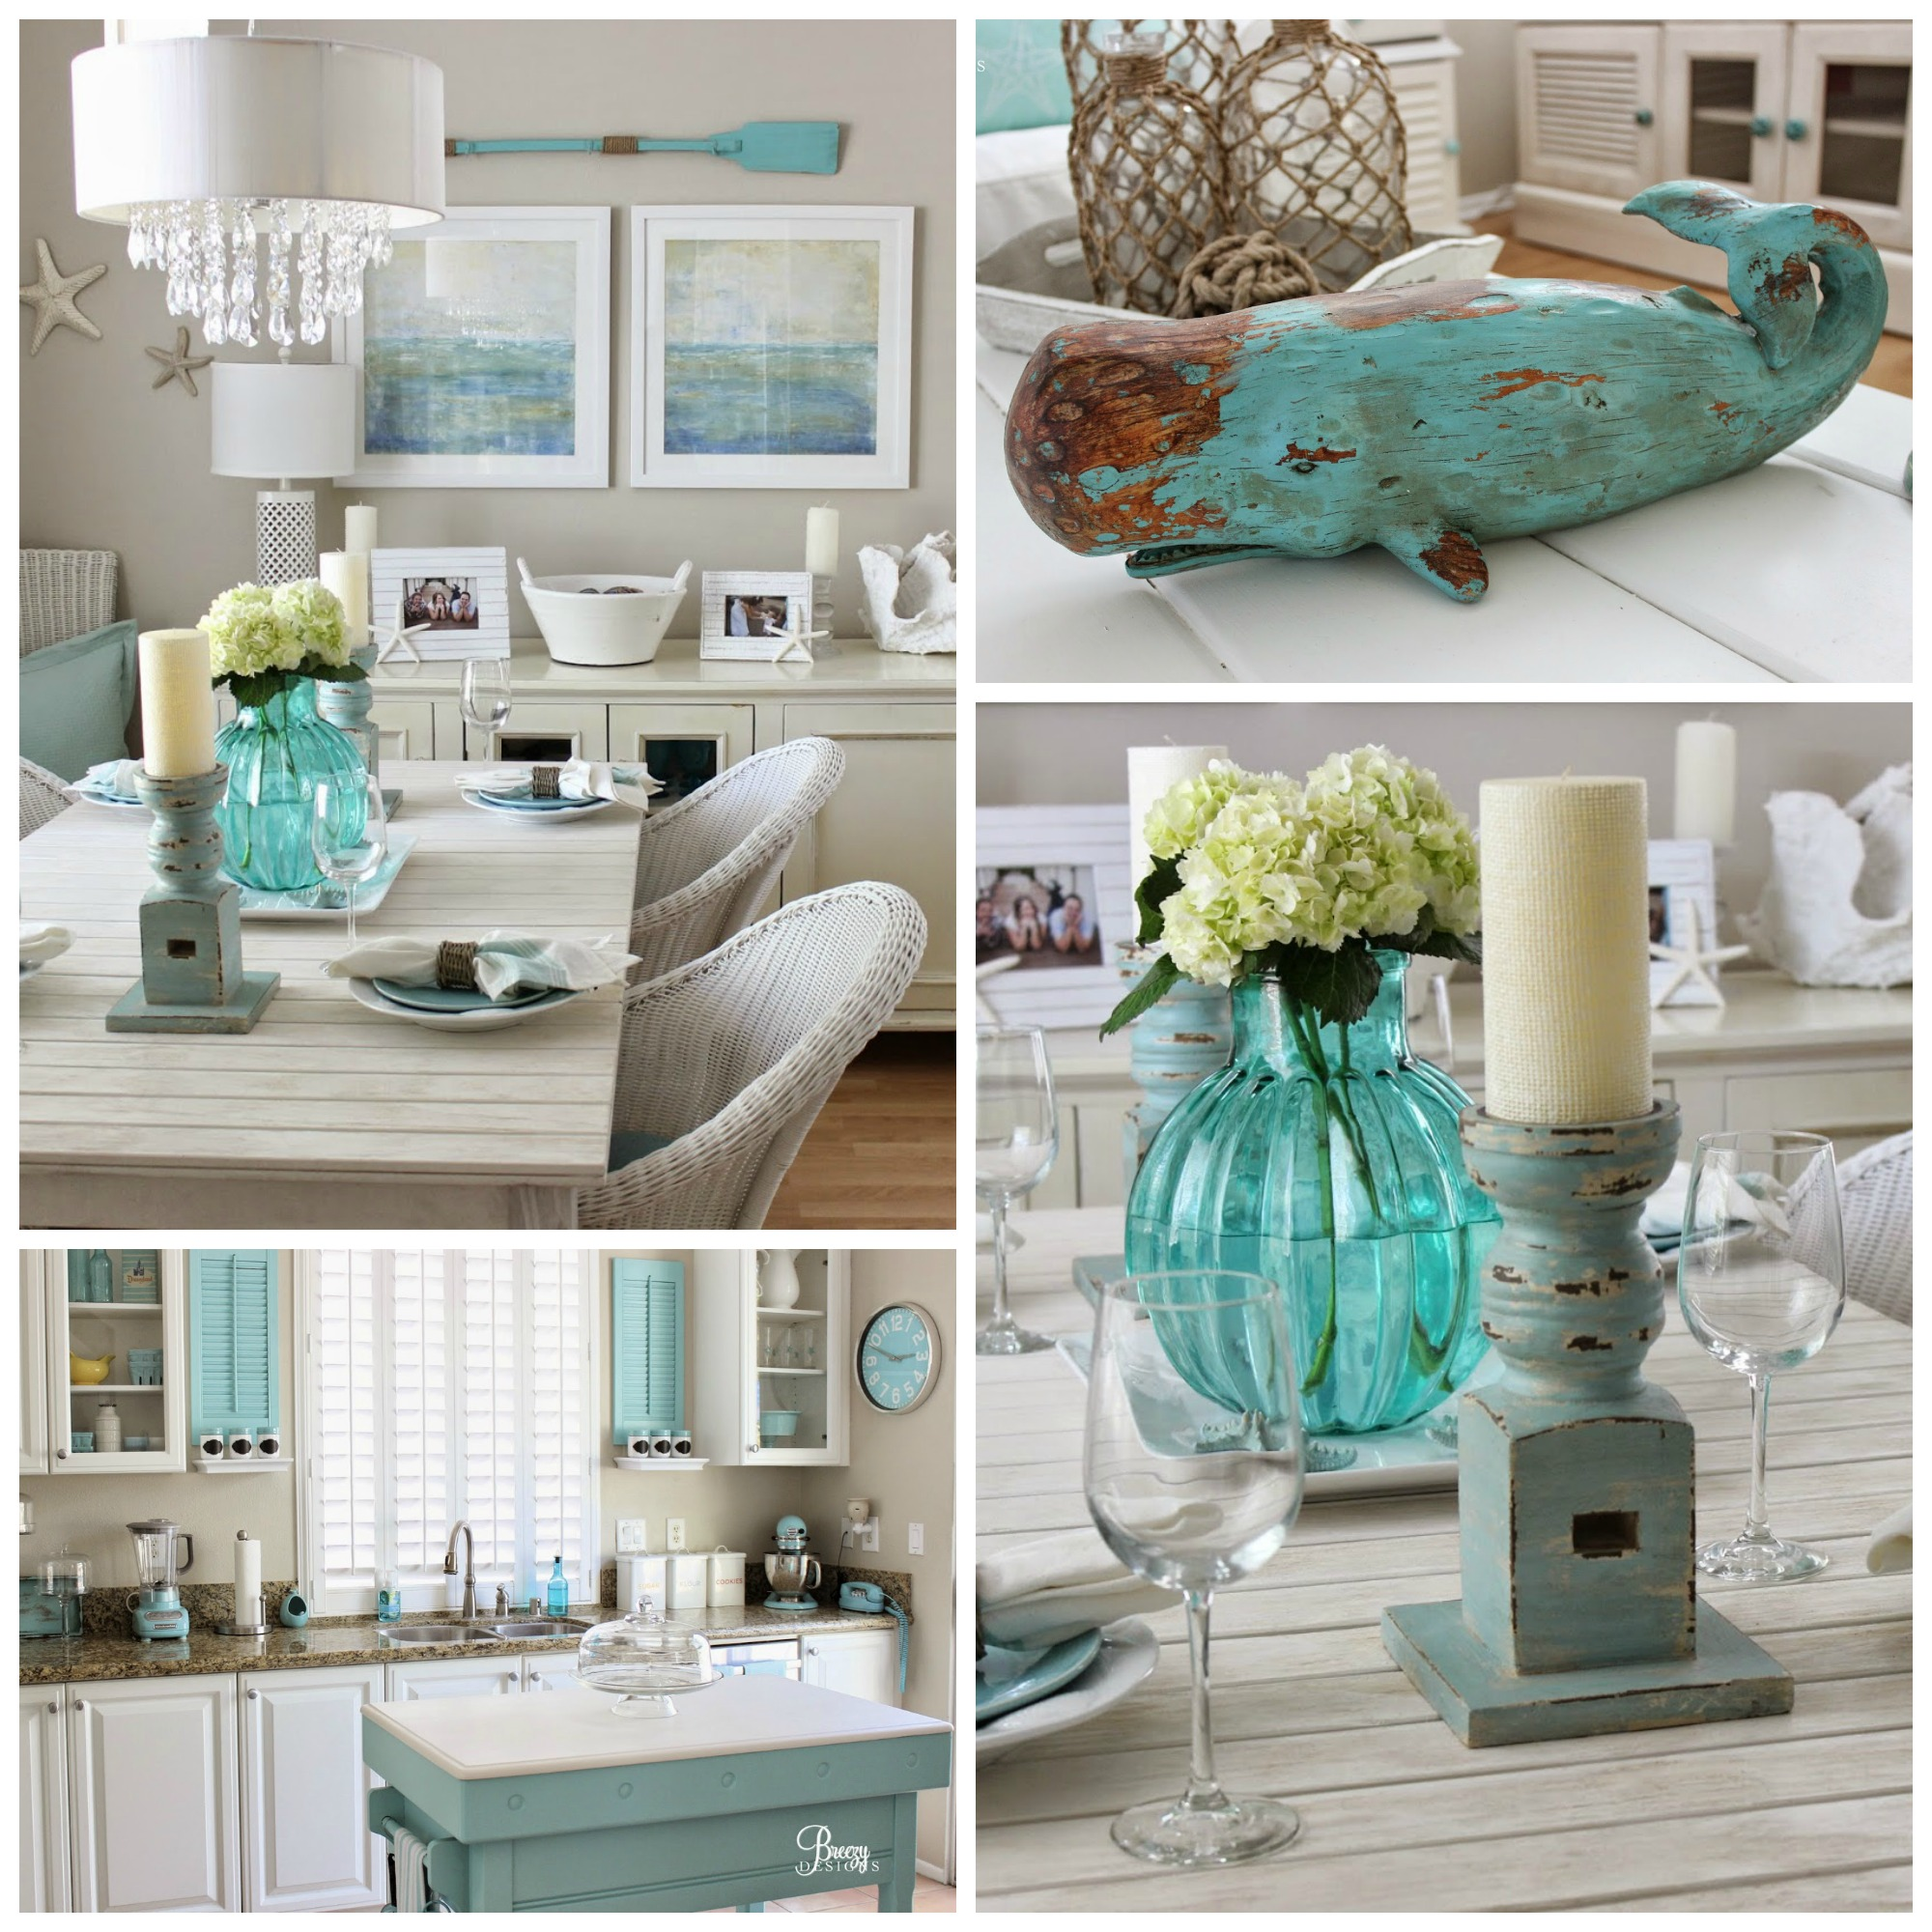 Beach chic coastal cottage home tour with breezy design for Beach cottage style decor